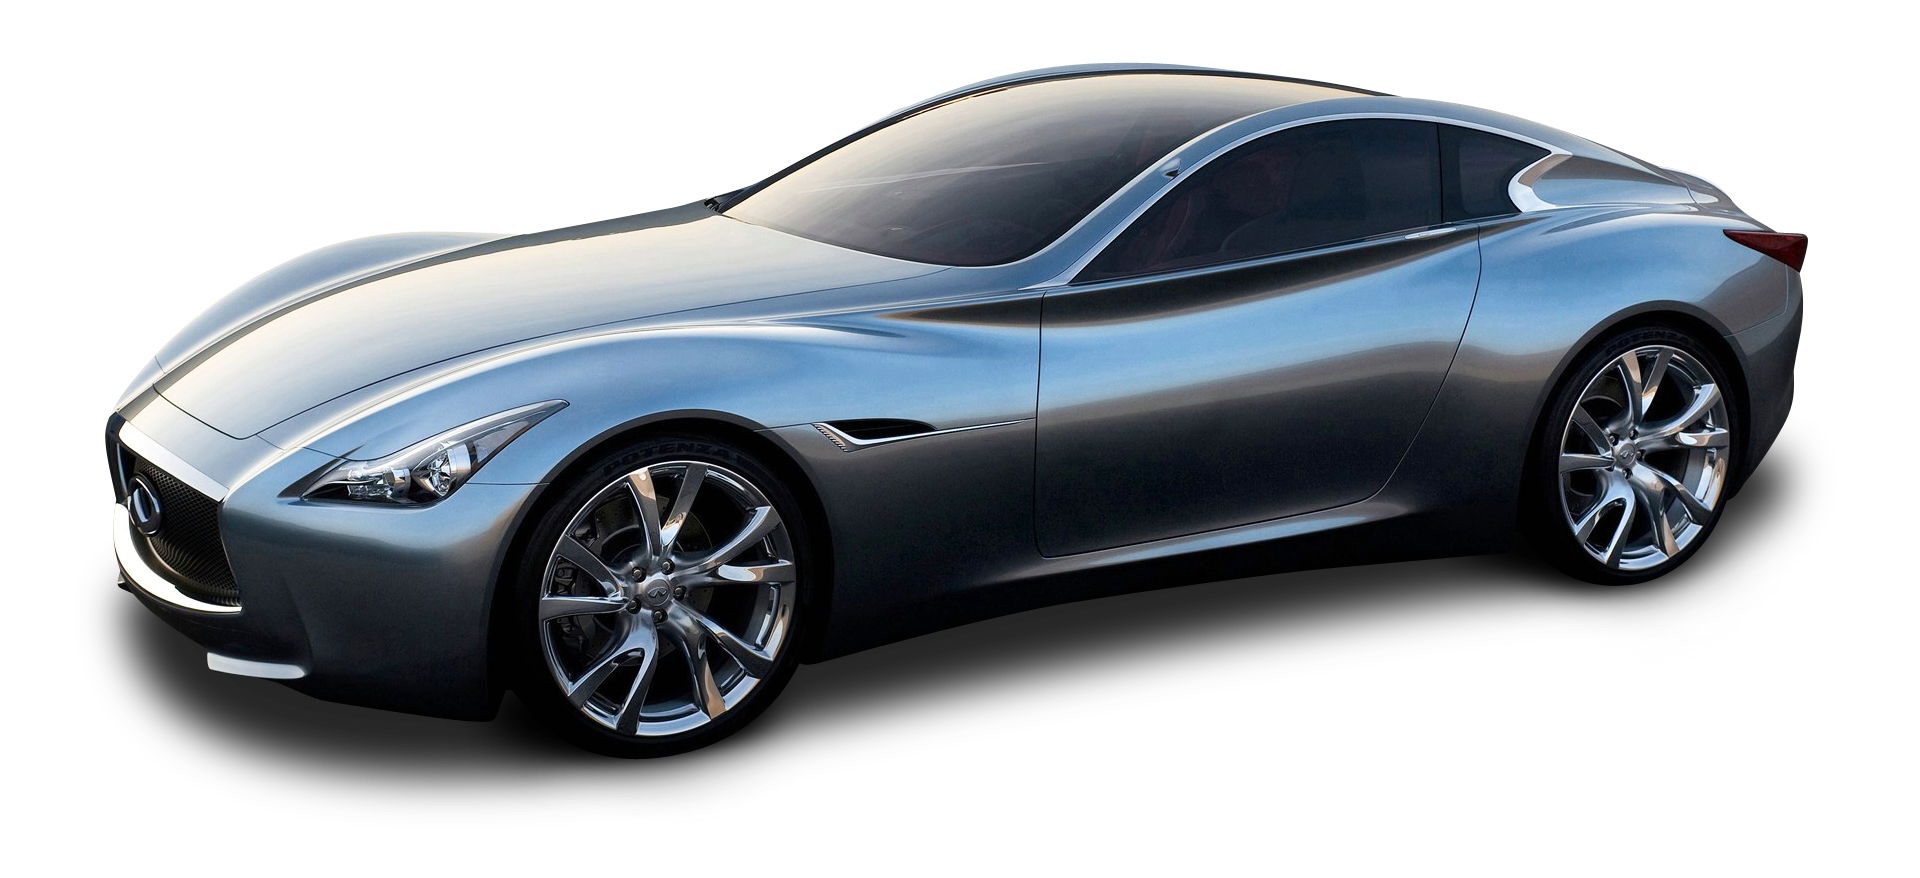 Infiniti Essence Concept Sports Car PNG Image